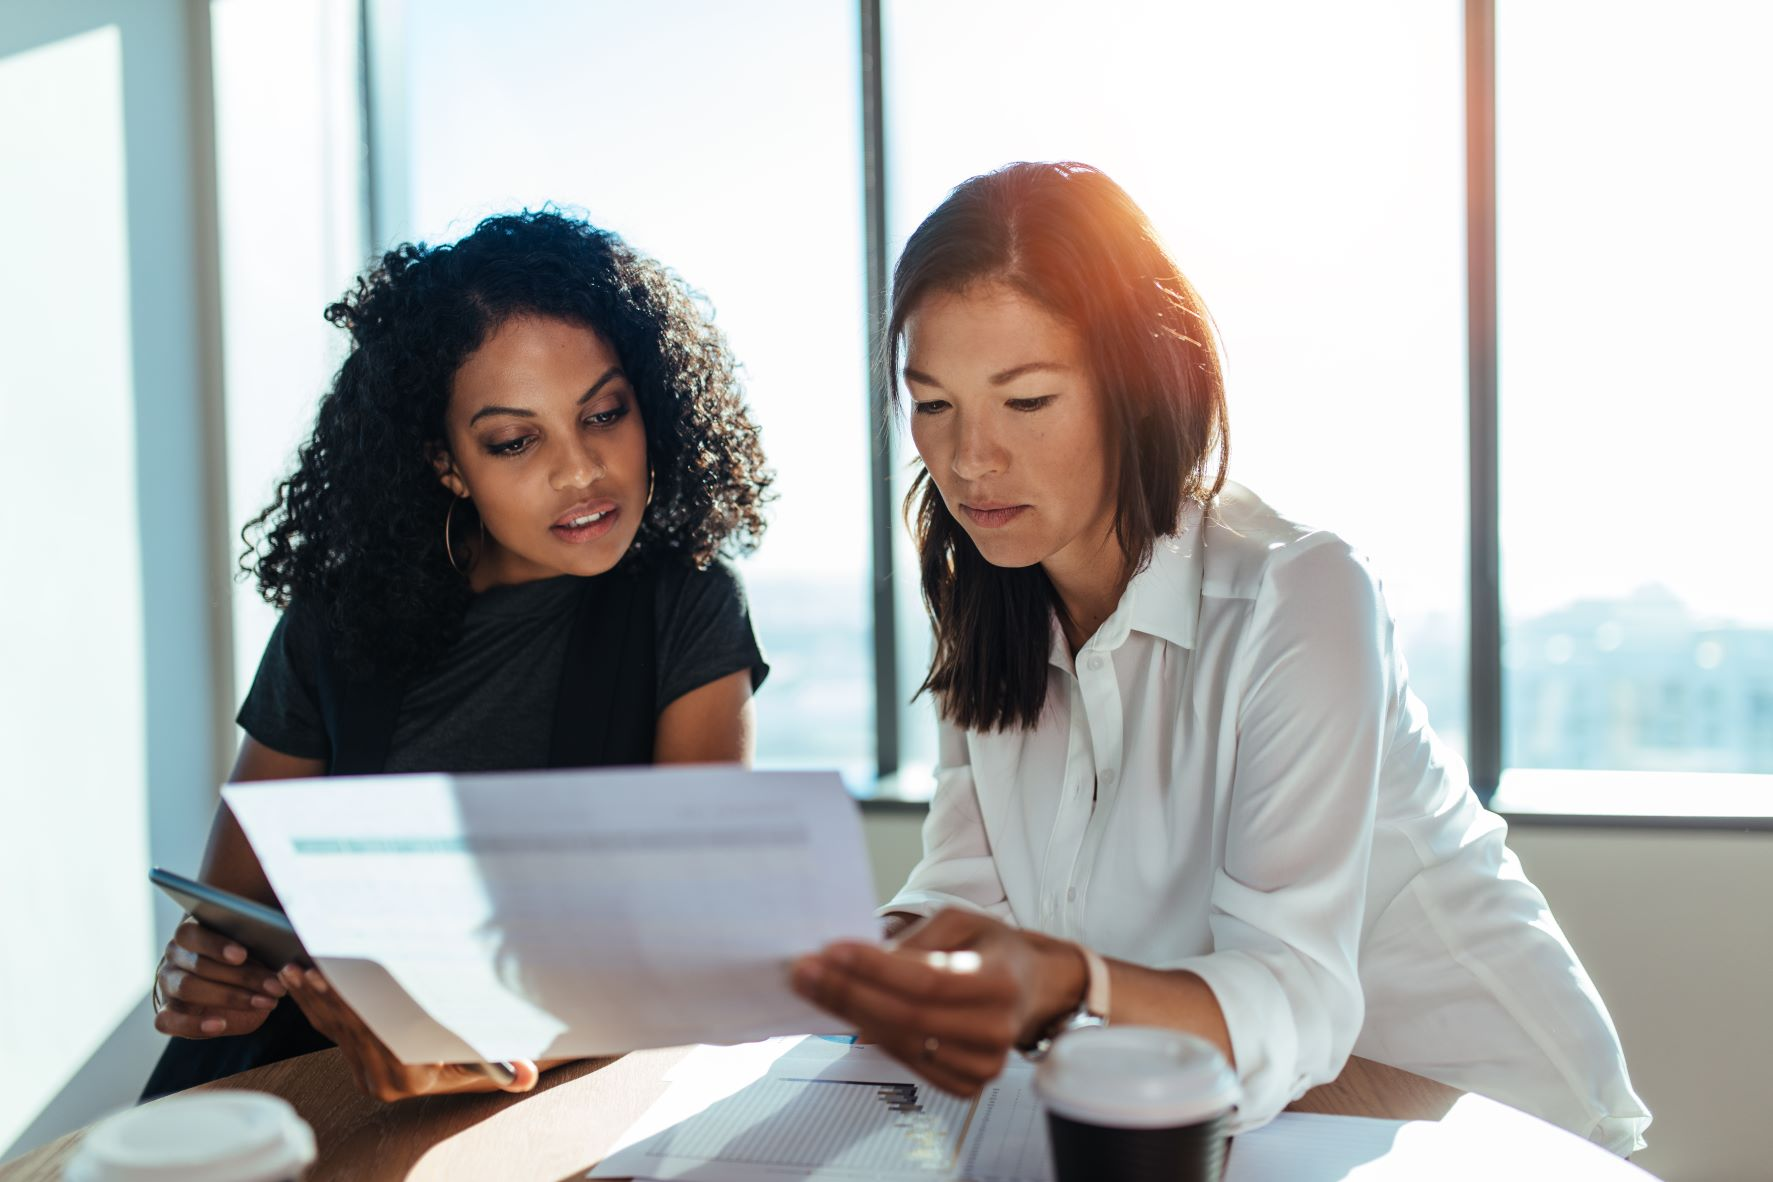 What Women Should Look for in an Advisor